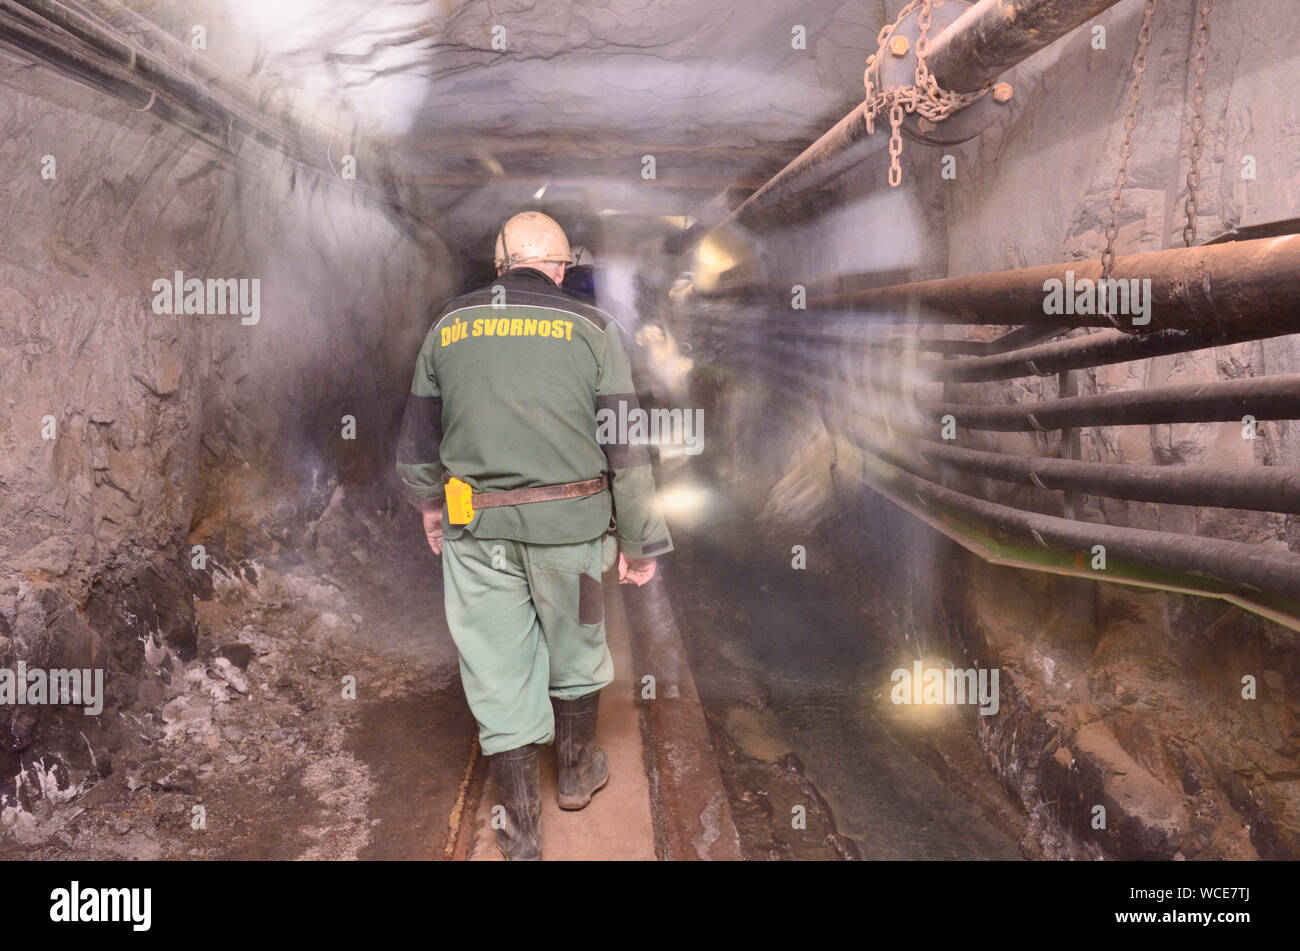 Jachymov, Germany. 08th Aug, 2019. Kilometre-long tunnels connect the underground sources of radon-containing water in the mine Unity in the Czech spa and mining town. The mine is normally not accessible to visitors. First silver was mined here, then uranium. Today, radioactive water is extracted here for spa operation. The Montan region Erzgebirge has been recognised as part of the world cultural heritage since July 2019. (to dpa KORR) Credit: Michael Heitmann/dpa/Alamy Live News Stock Photo